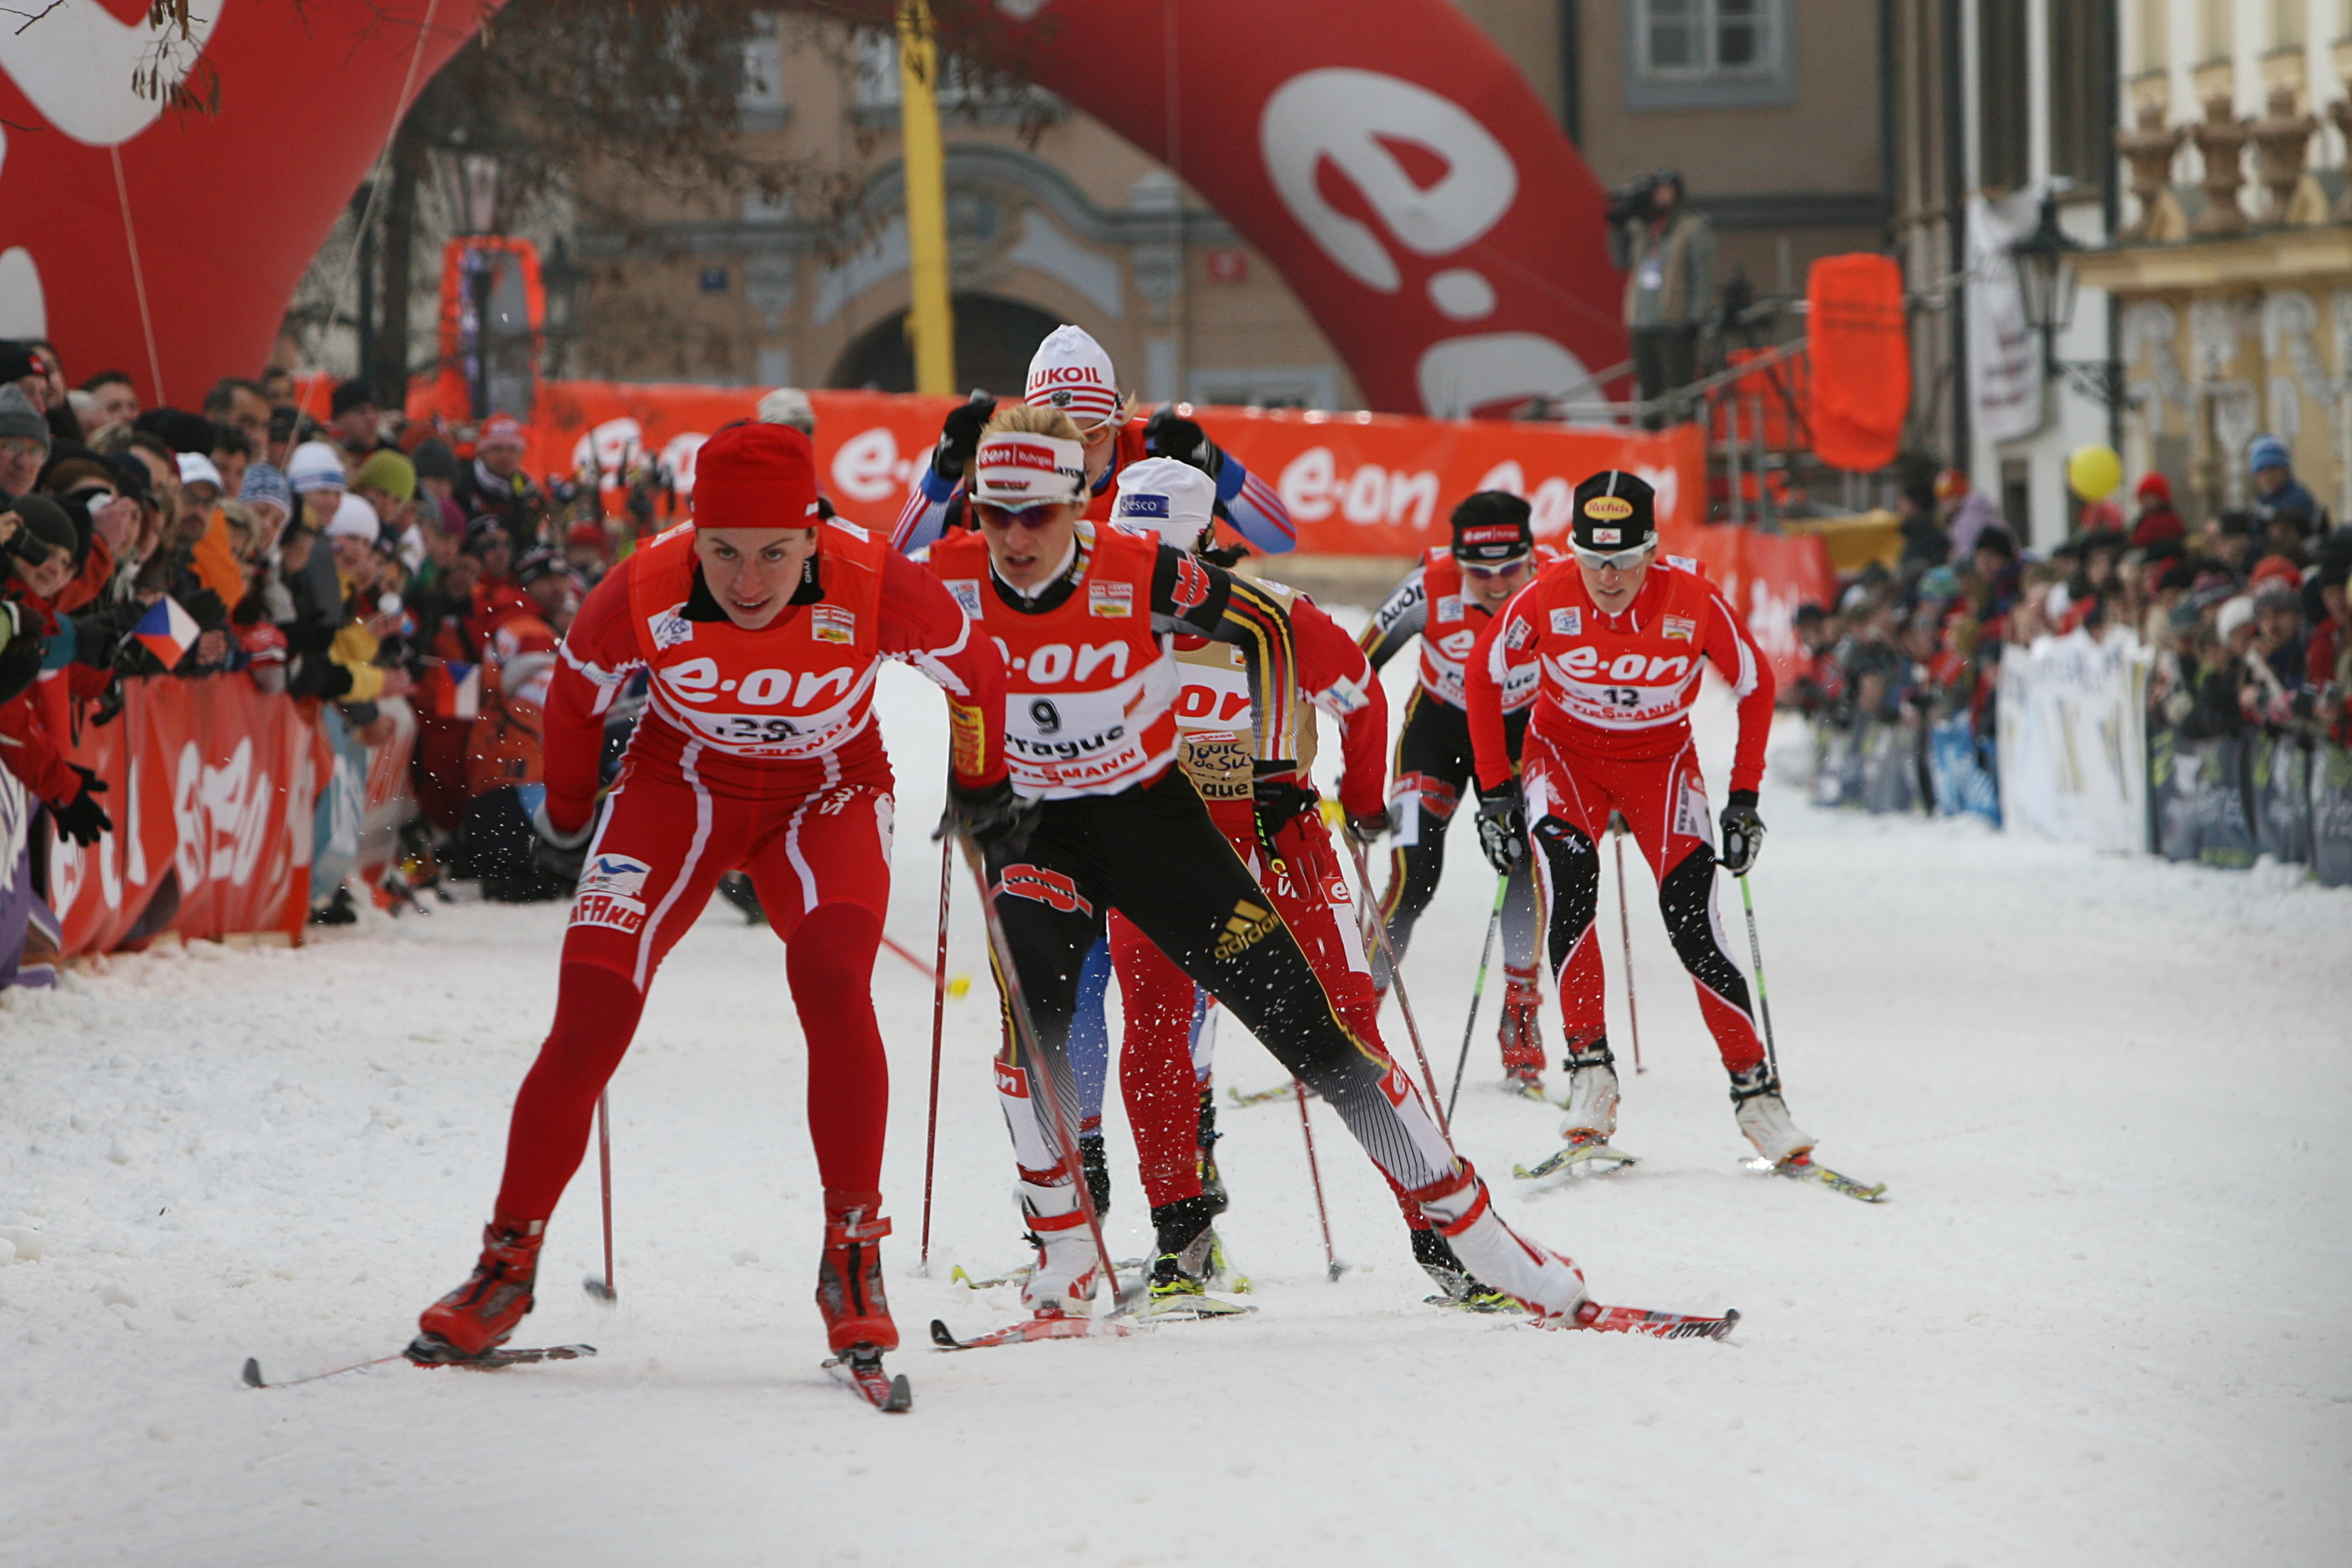 http://upload.wikimedia.org/wikipedia/commons/e/e3/Justyna_Kowalczyk_at_Tour_de_Ski.jpg